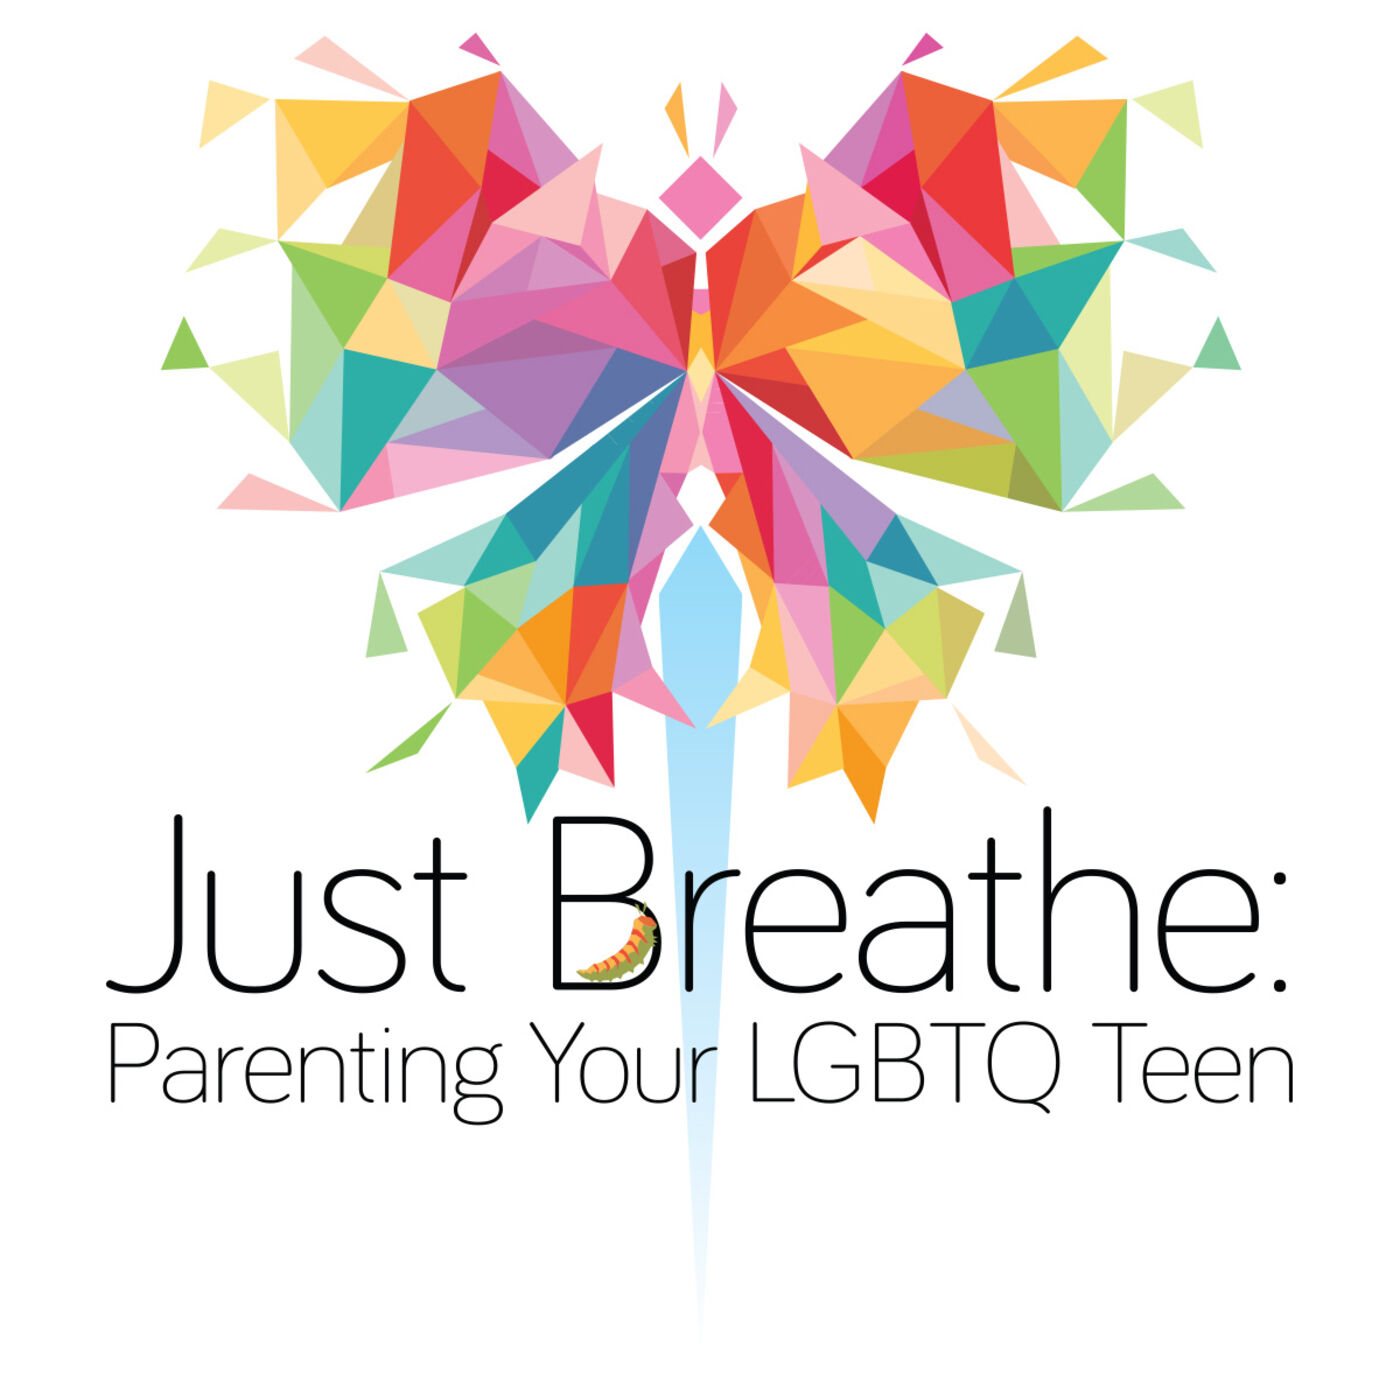 Just Breathe: Parenting Your LGBTQ Teen